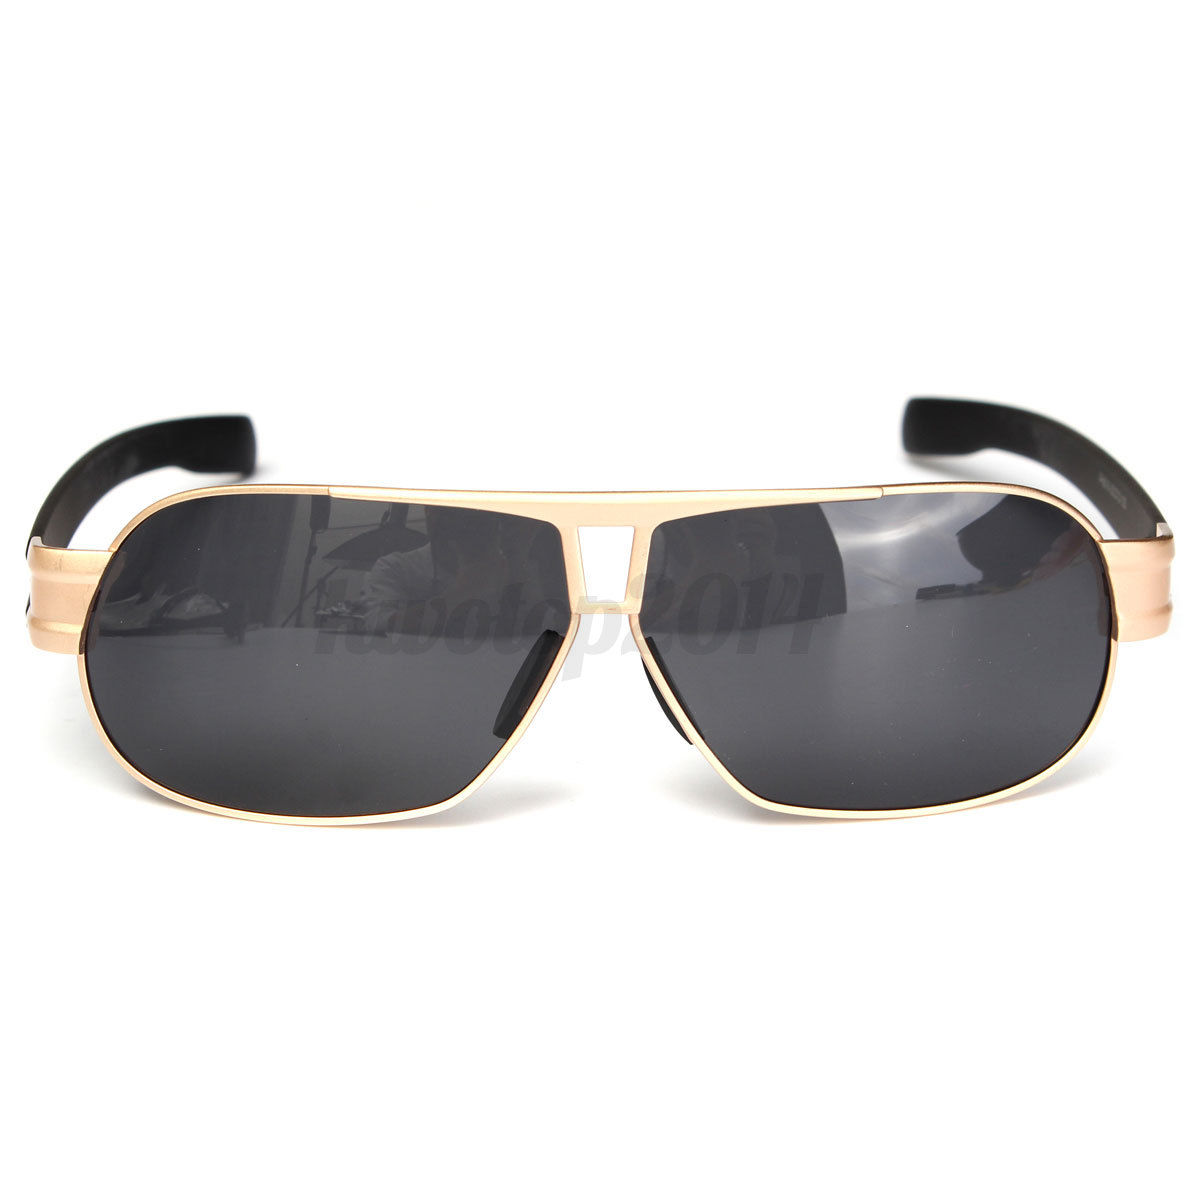 Best Polarized Sunglasses For Driving